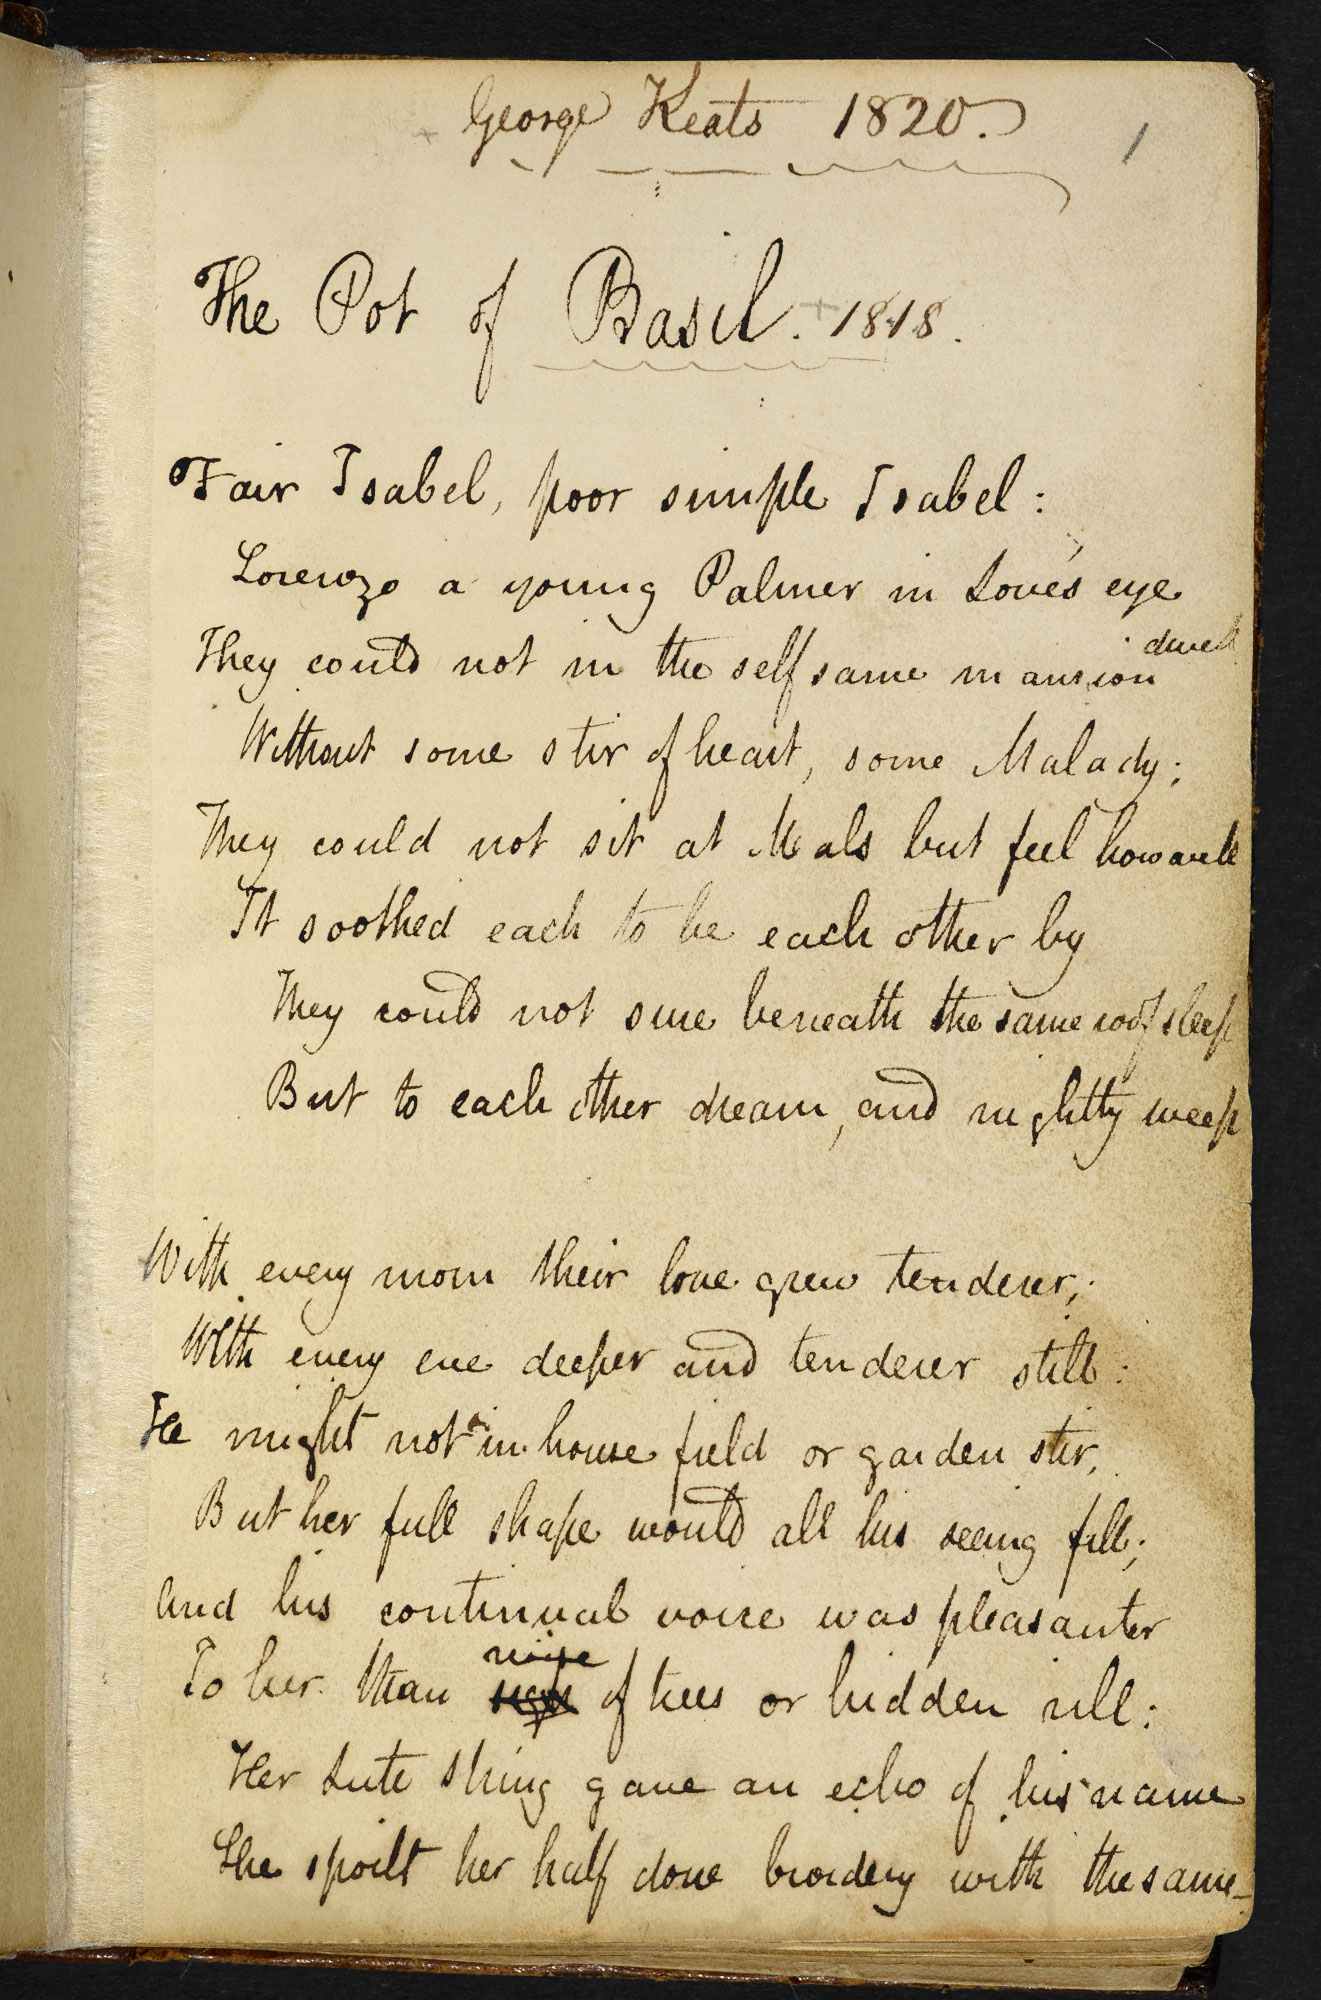 Collection of manuscript poems by John Keats, including the Odes and 'To Autumn'